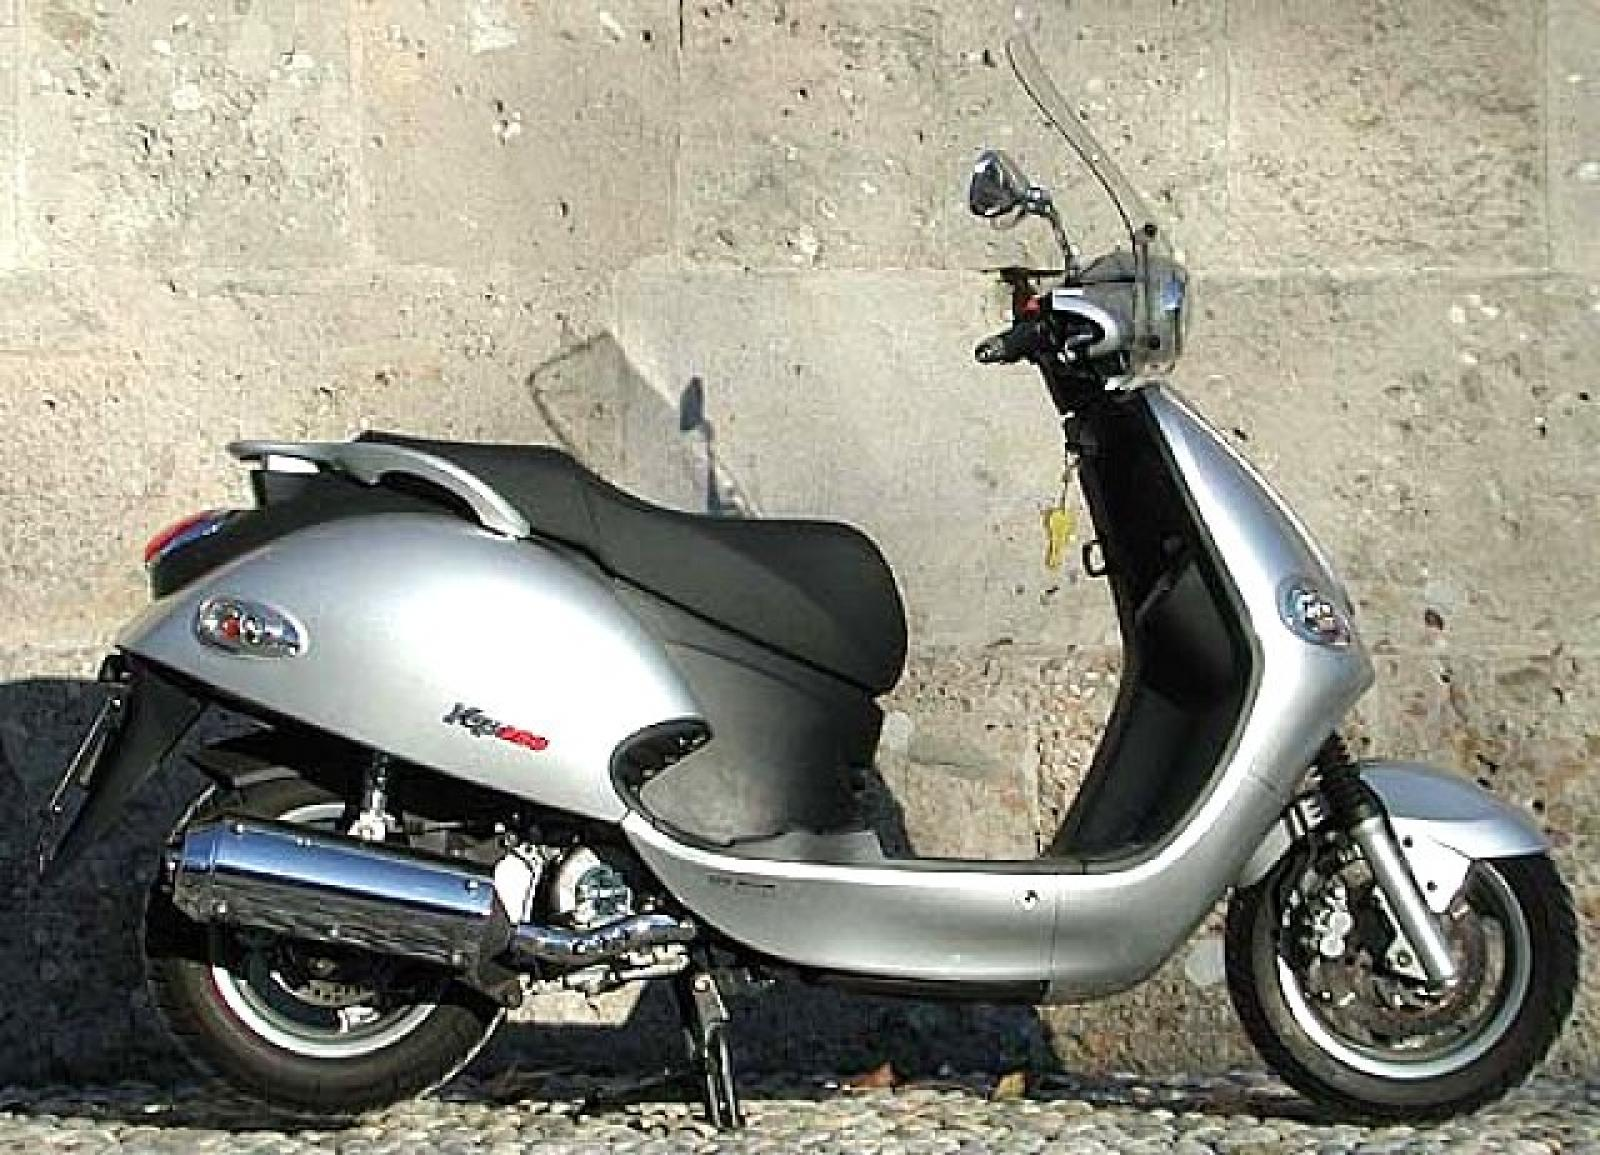 2004 Kymco Yup 50  Pics  Specs And Information